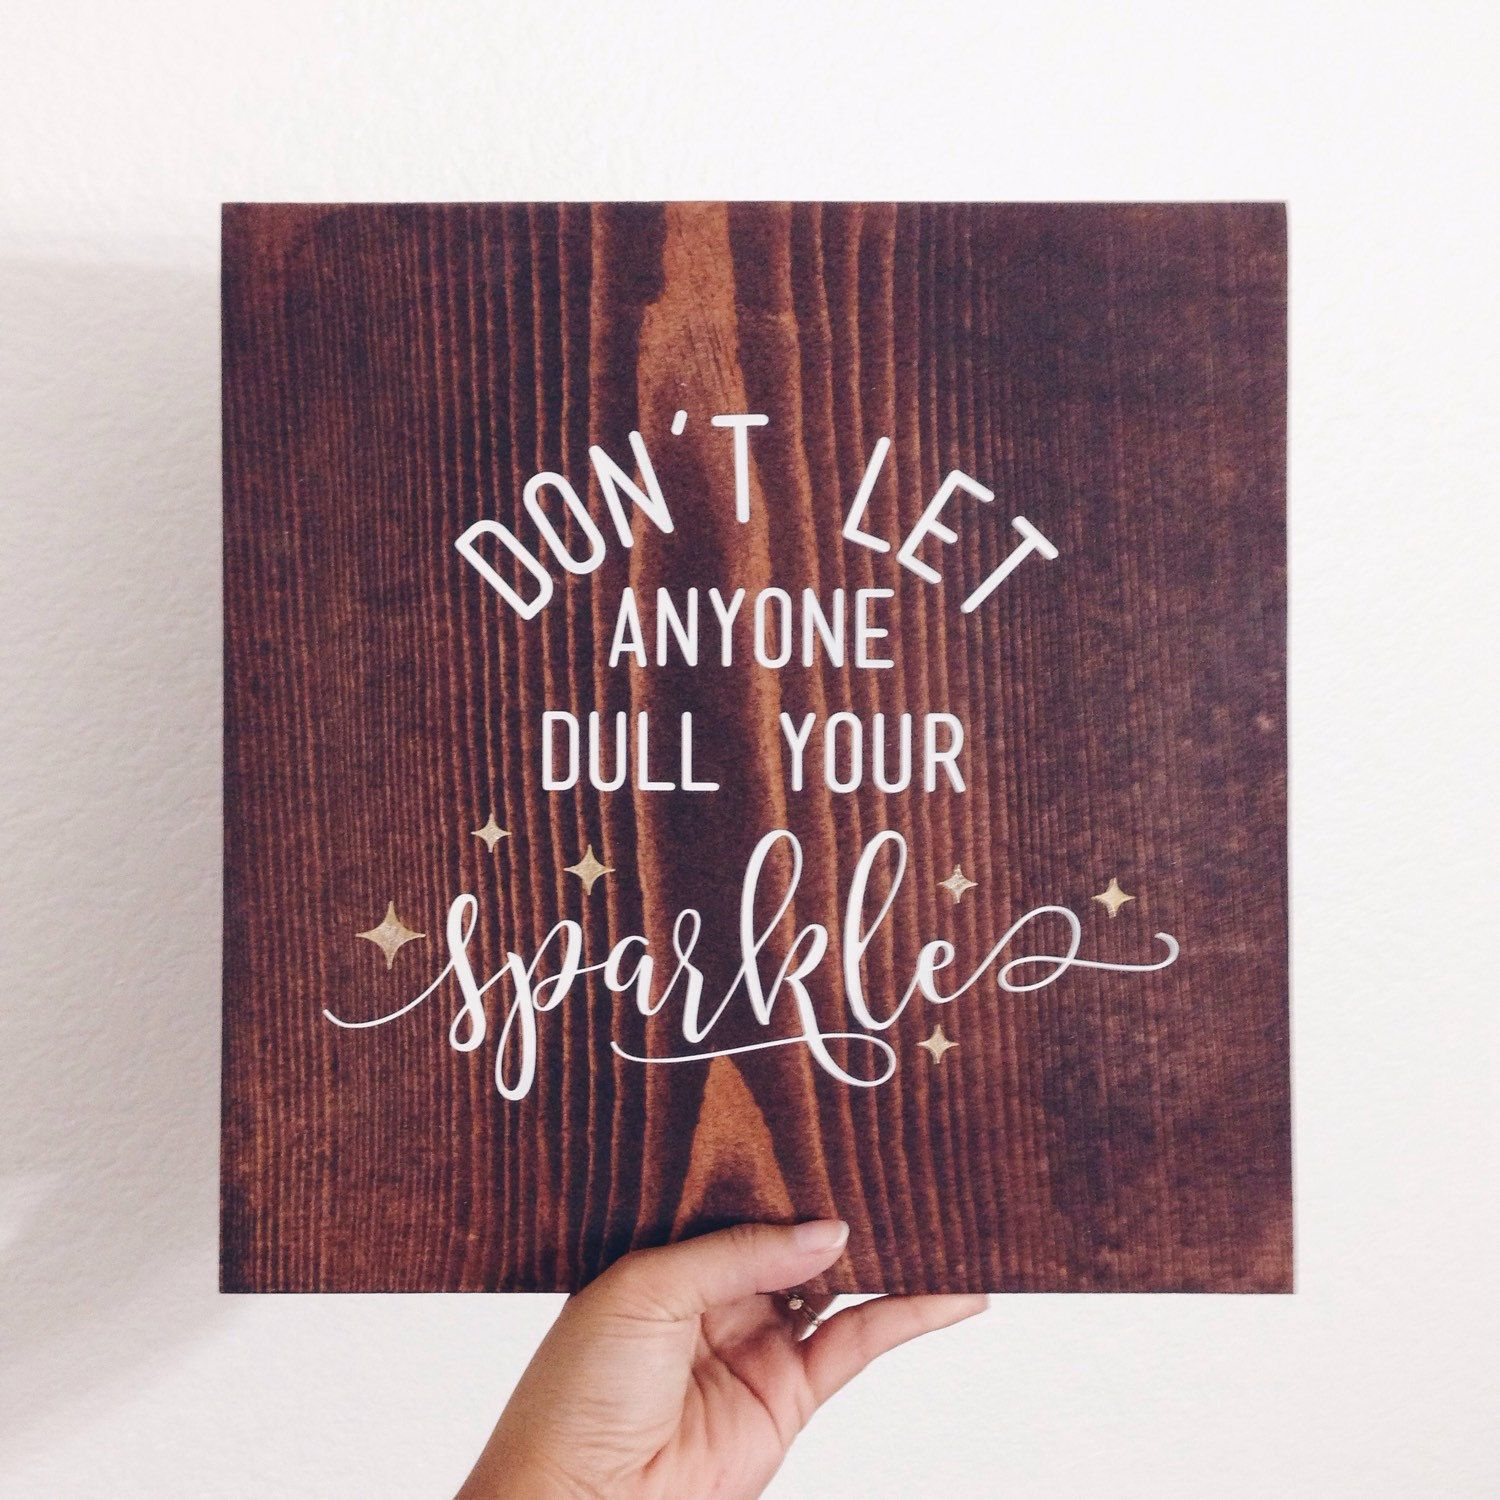 Donut let anyone dull your sparkle painted sign inspirational